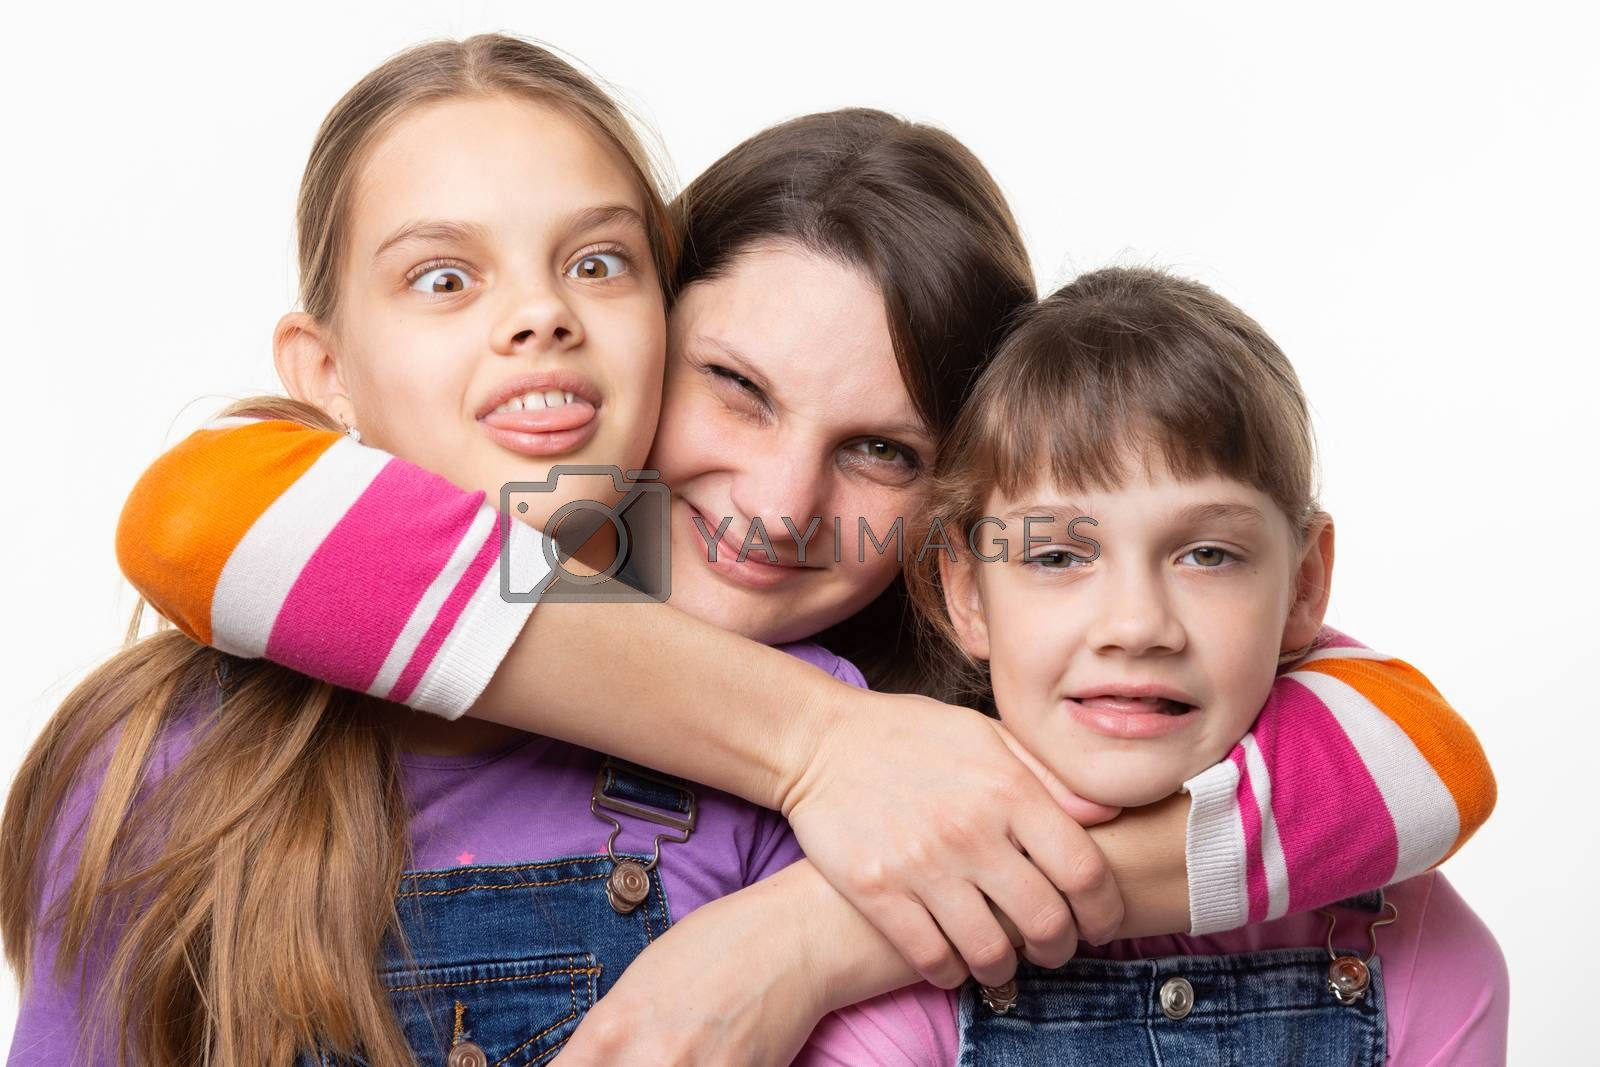 Mom hugged and squeezed the necks of children, isolated on white background